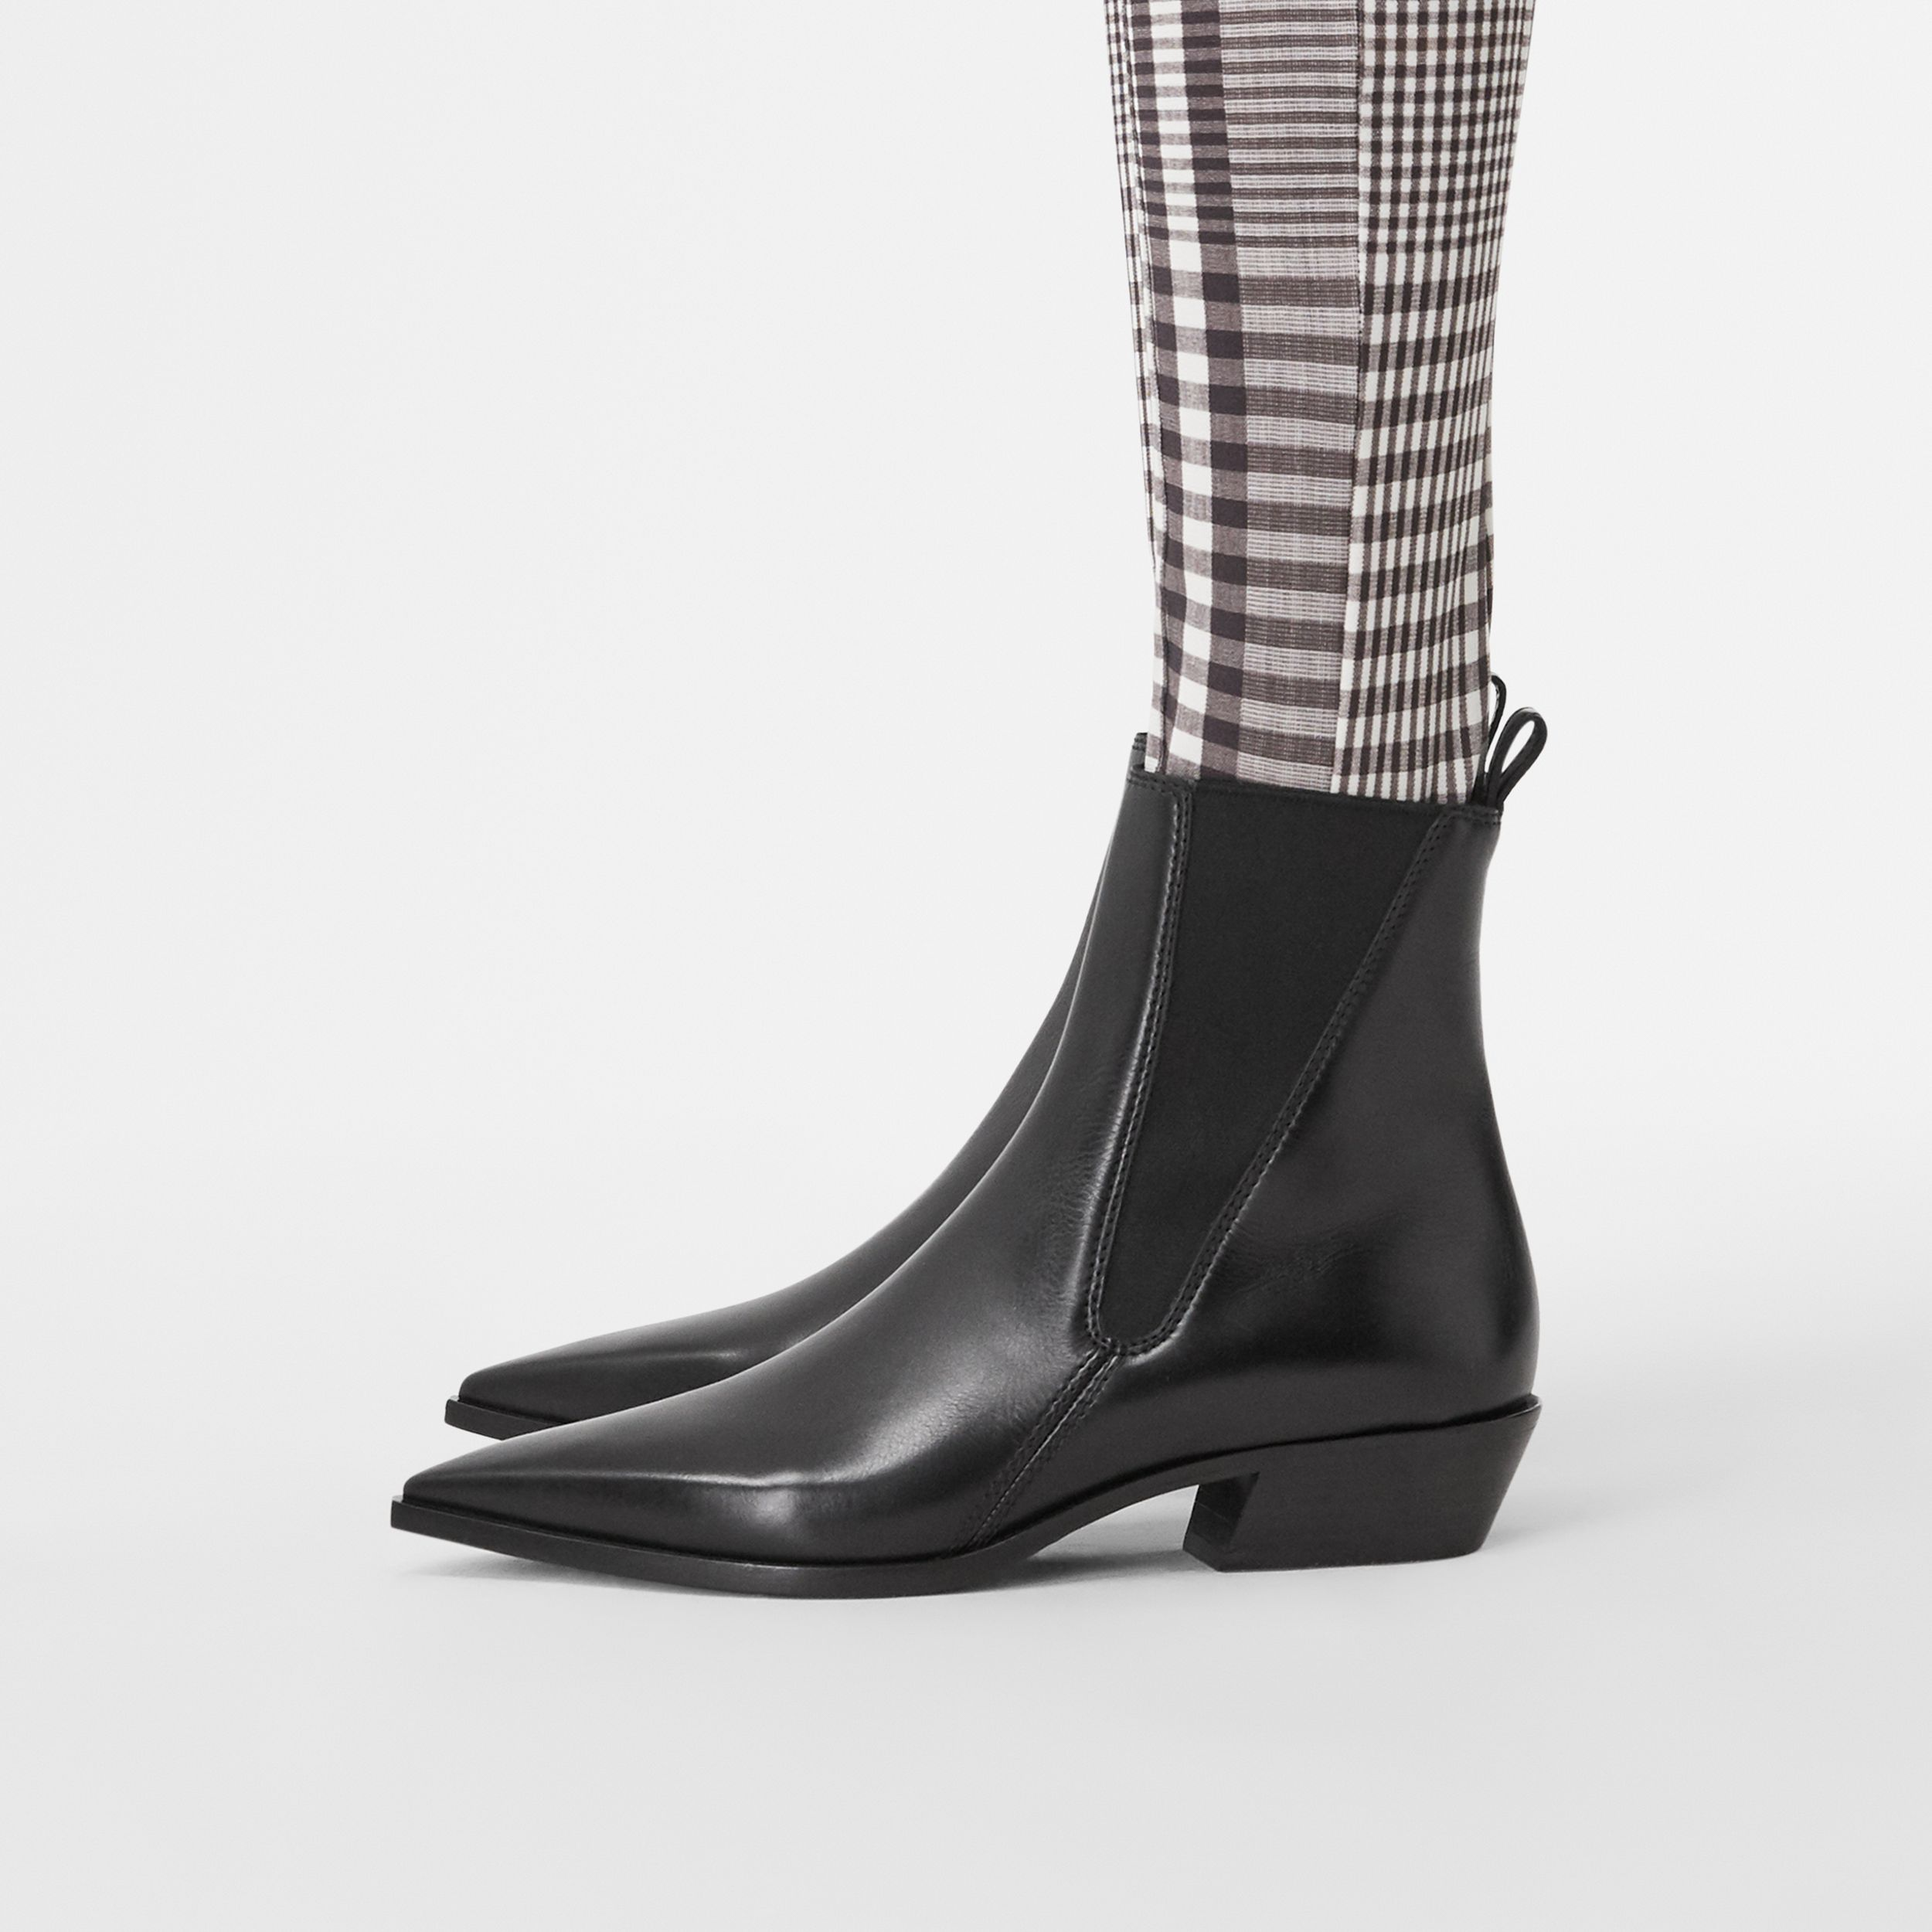 Leather Point-toe Chelsea Boots in Black - Women | Burberry United Kingdom - 3